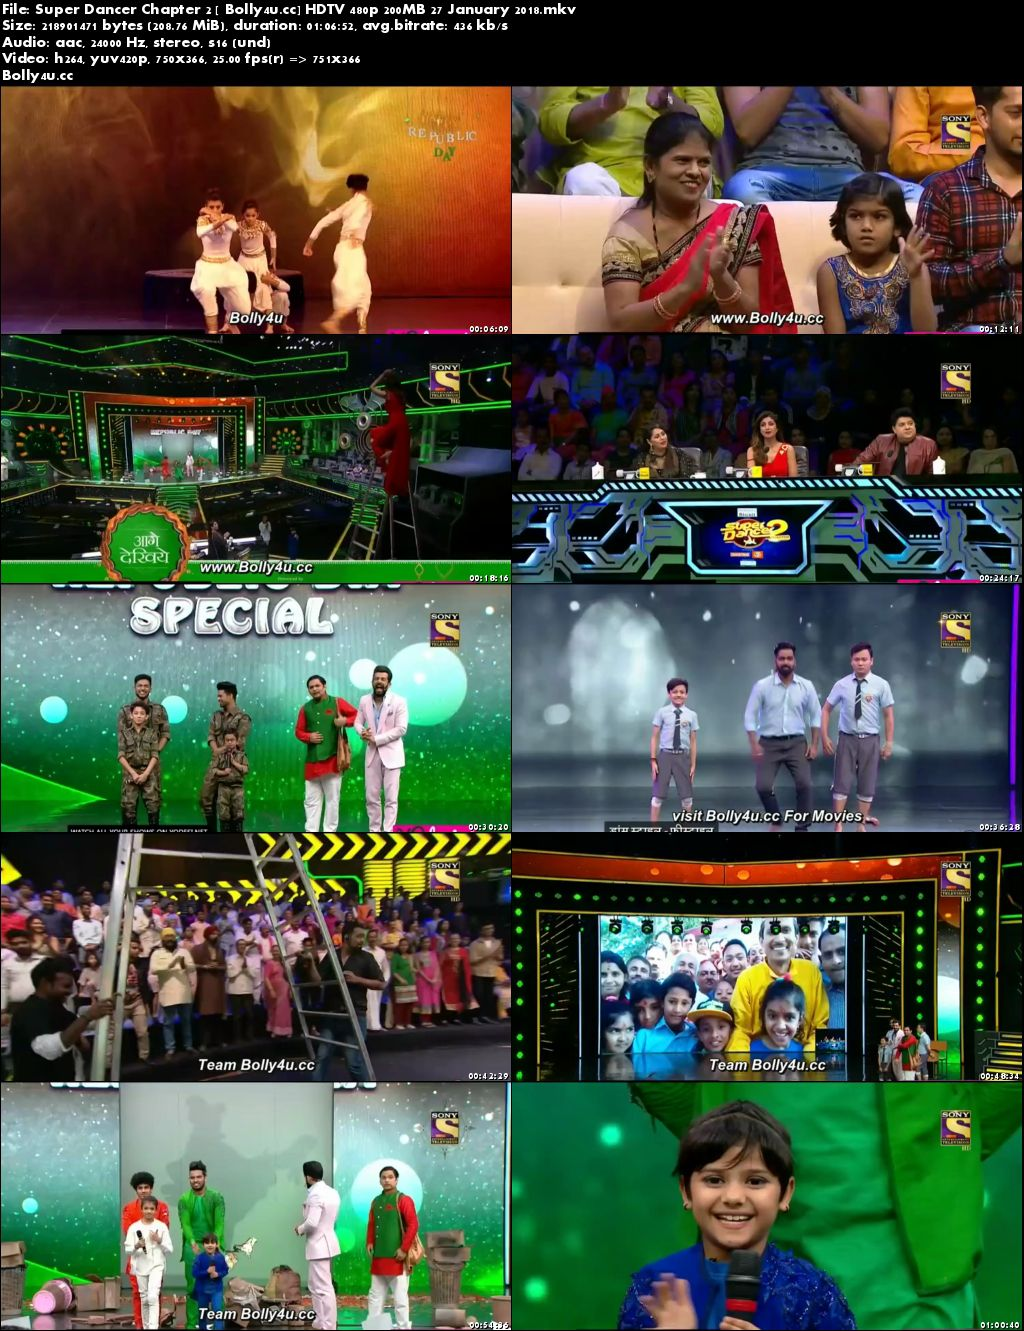 Super Dancer Chapter 2 HDTV 480p 200MB 27 January 2018 Download